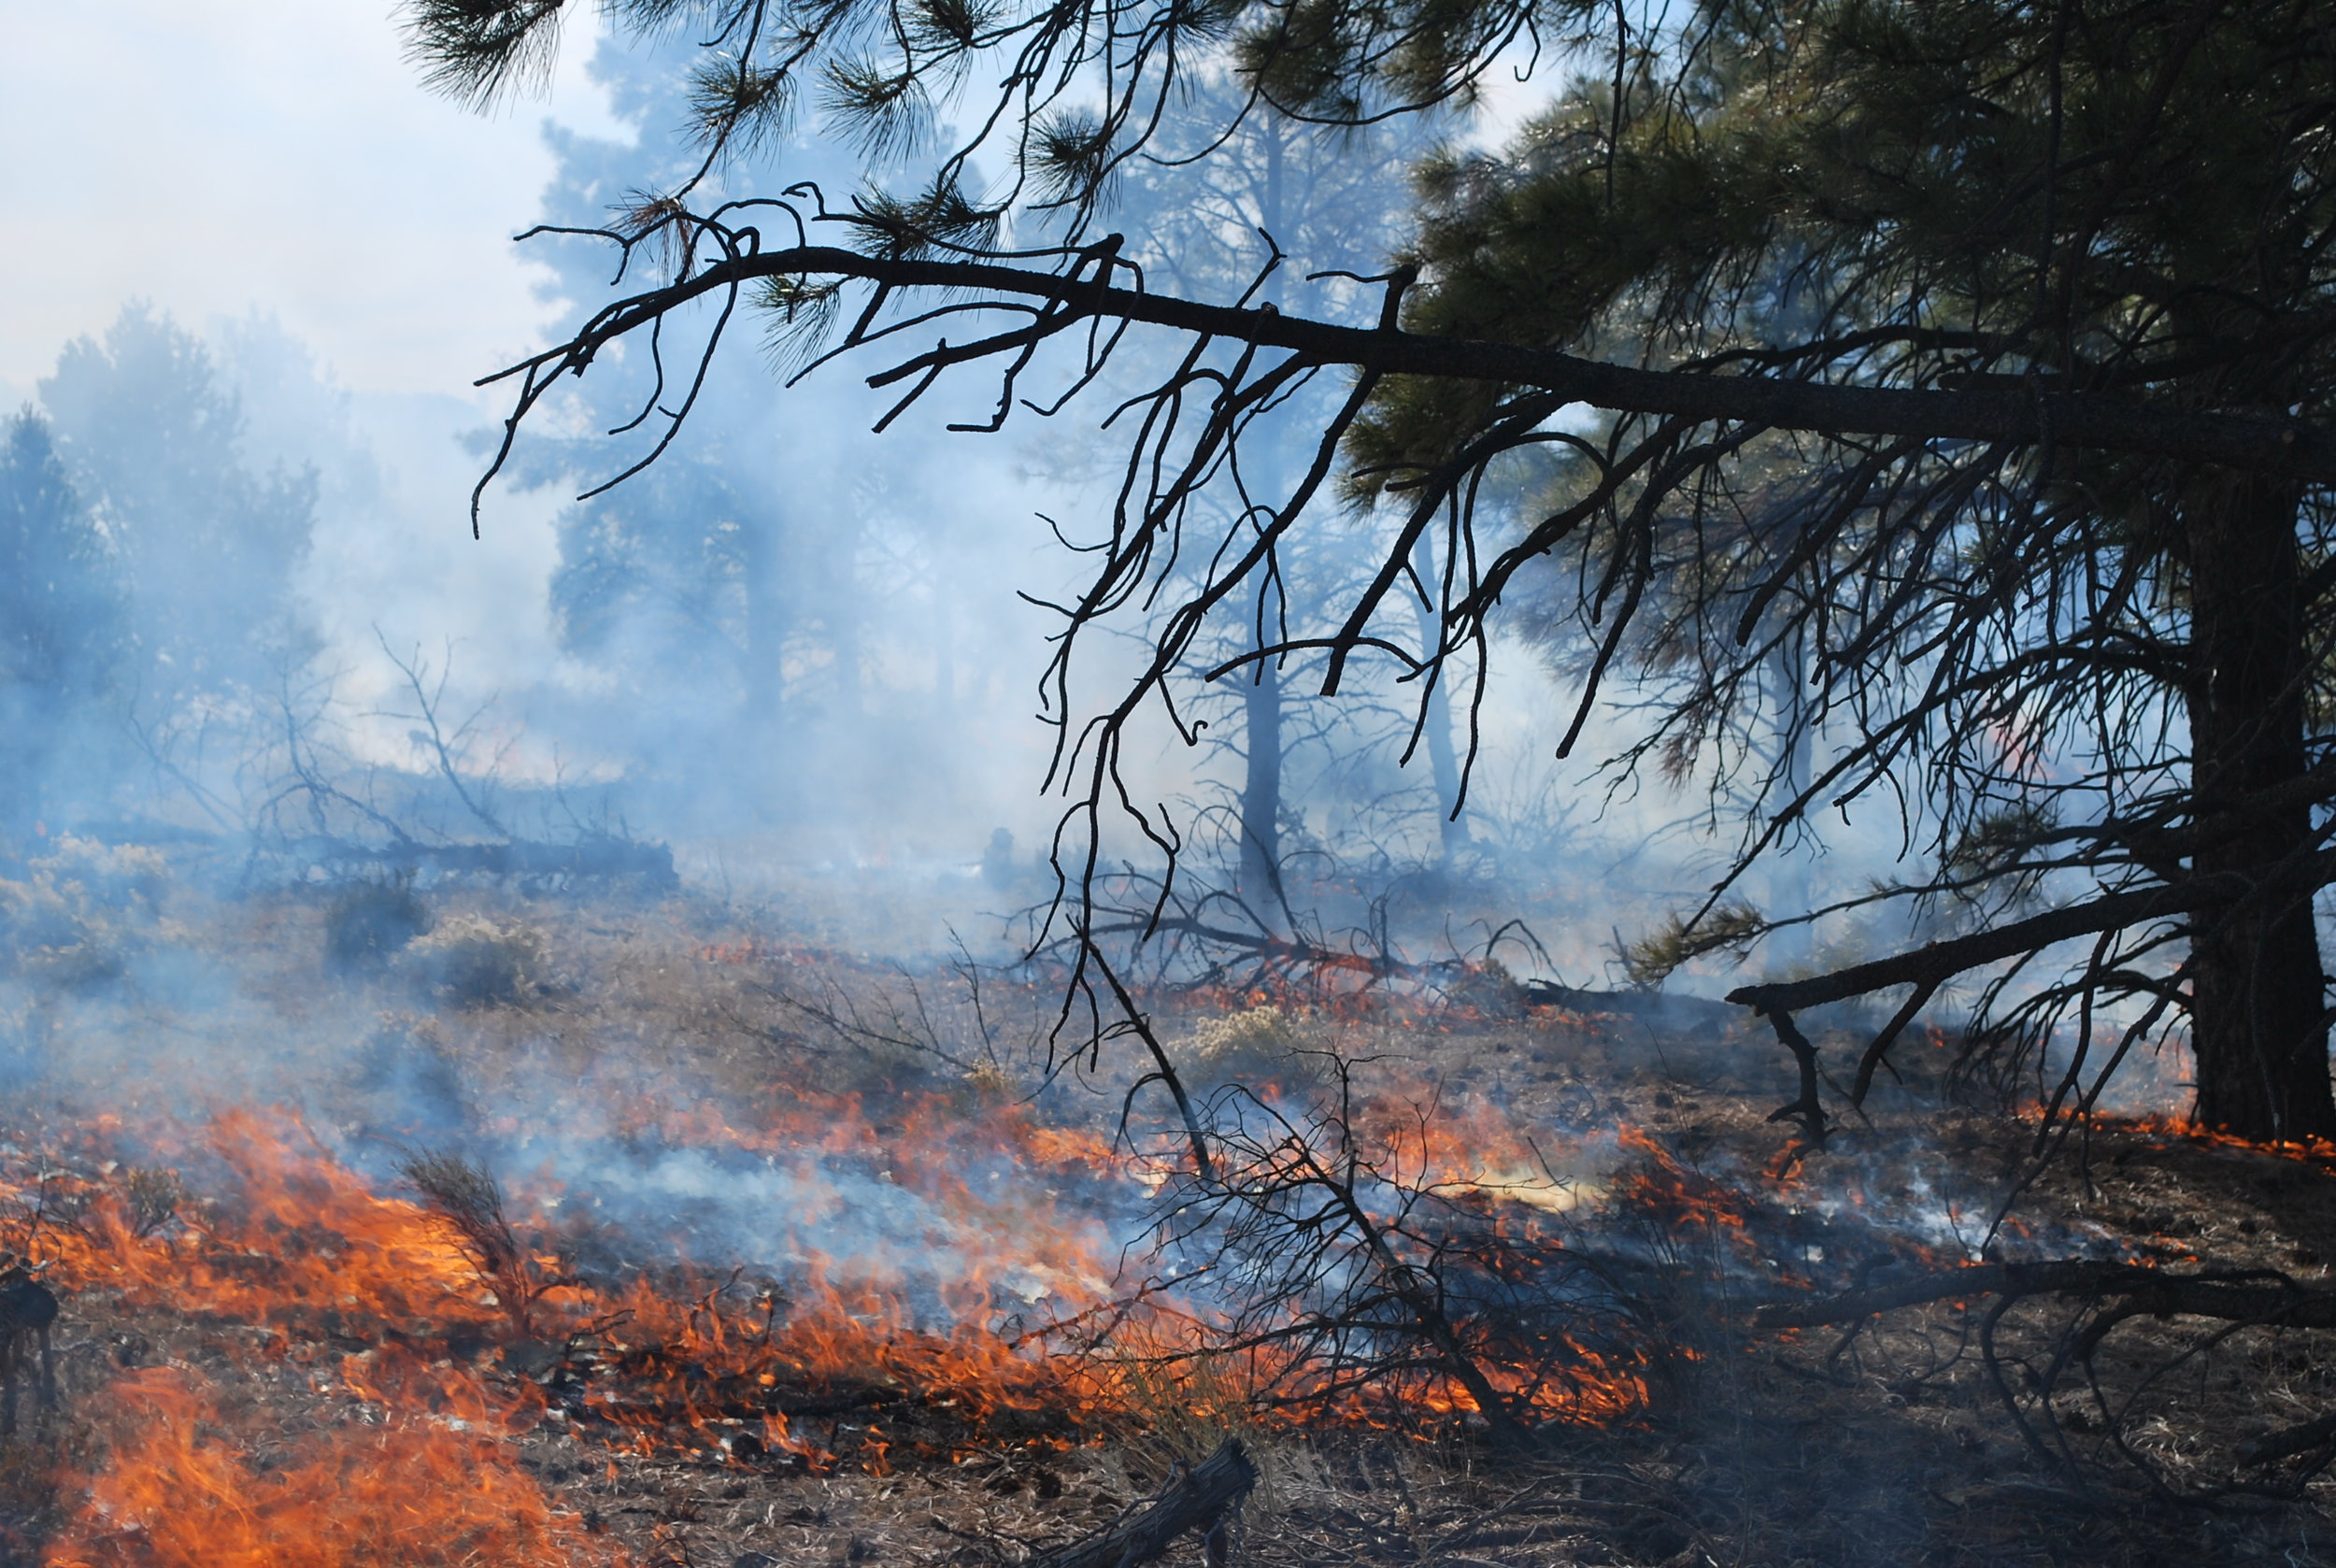 Photo: Eytan Krasilovsky, prescribed fire, NM.